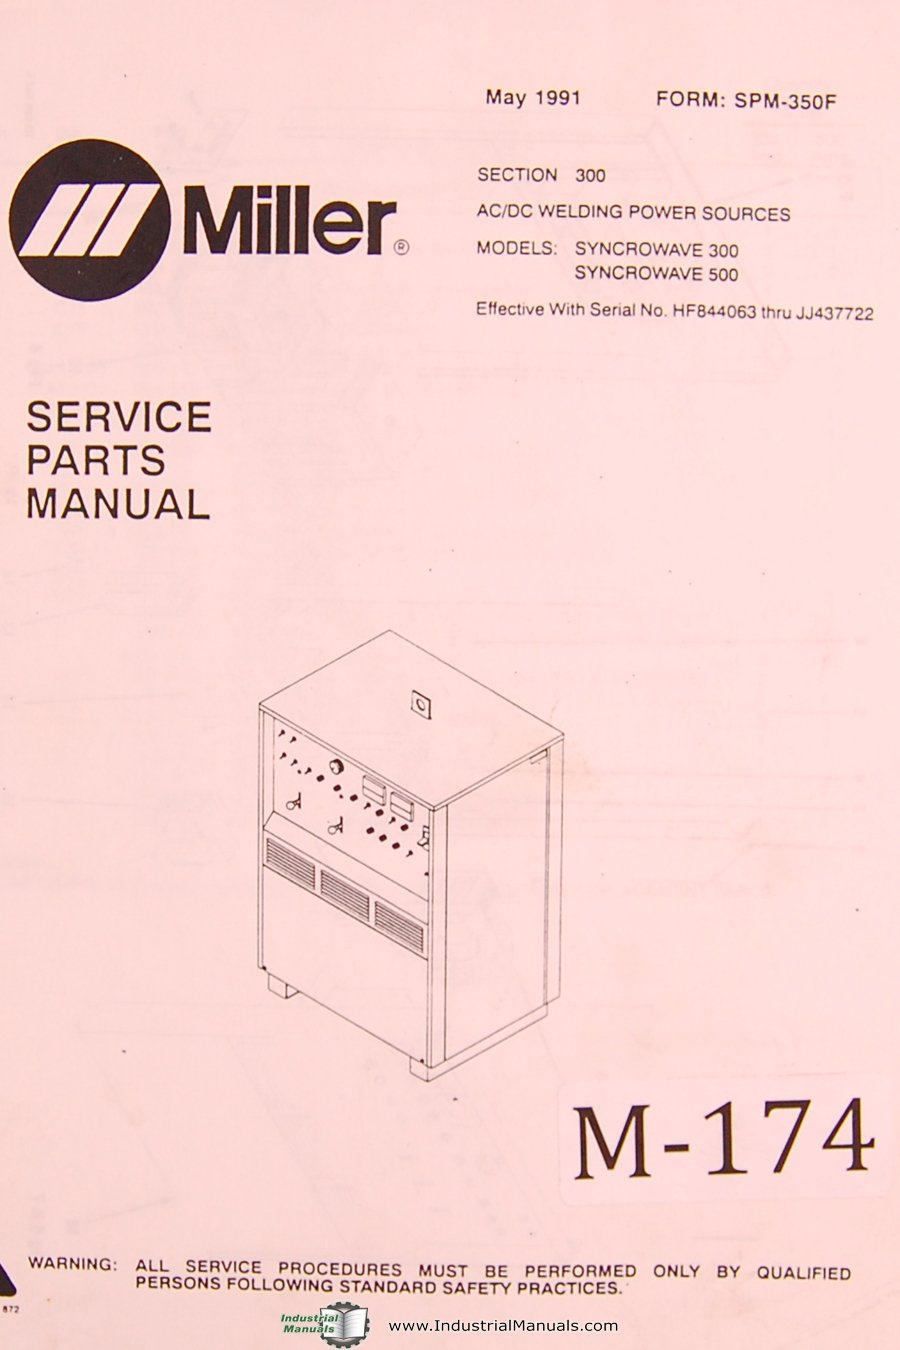 Miller Syncrowave 300 & 500, AC/DC Welding Power Sources, Service Parts  Manual: Miller: Amazon.com: Books